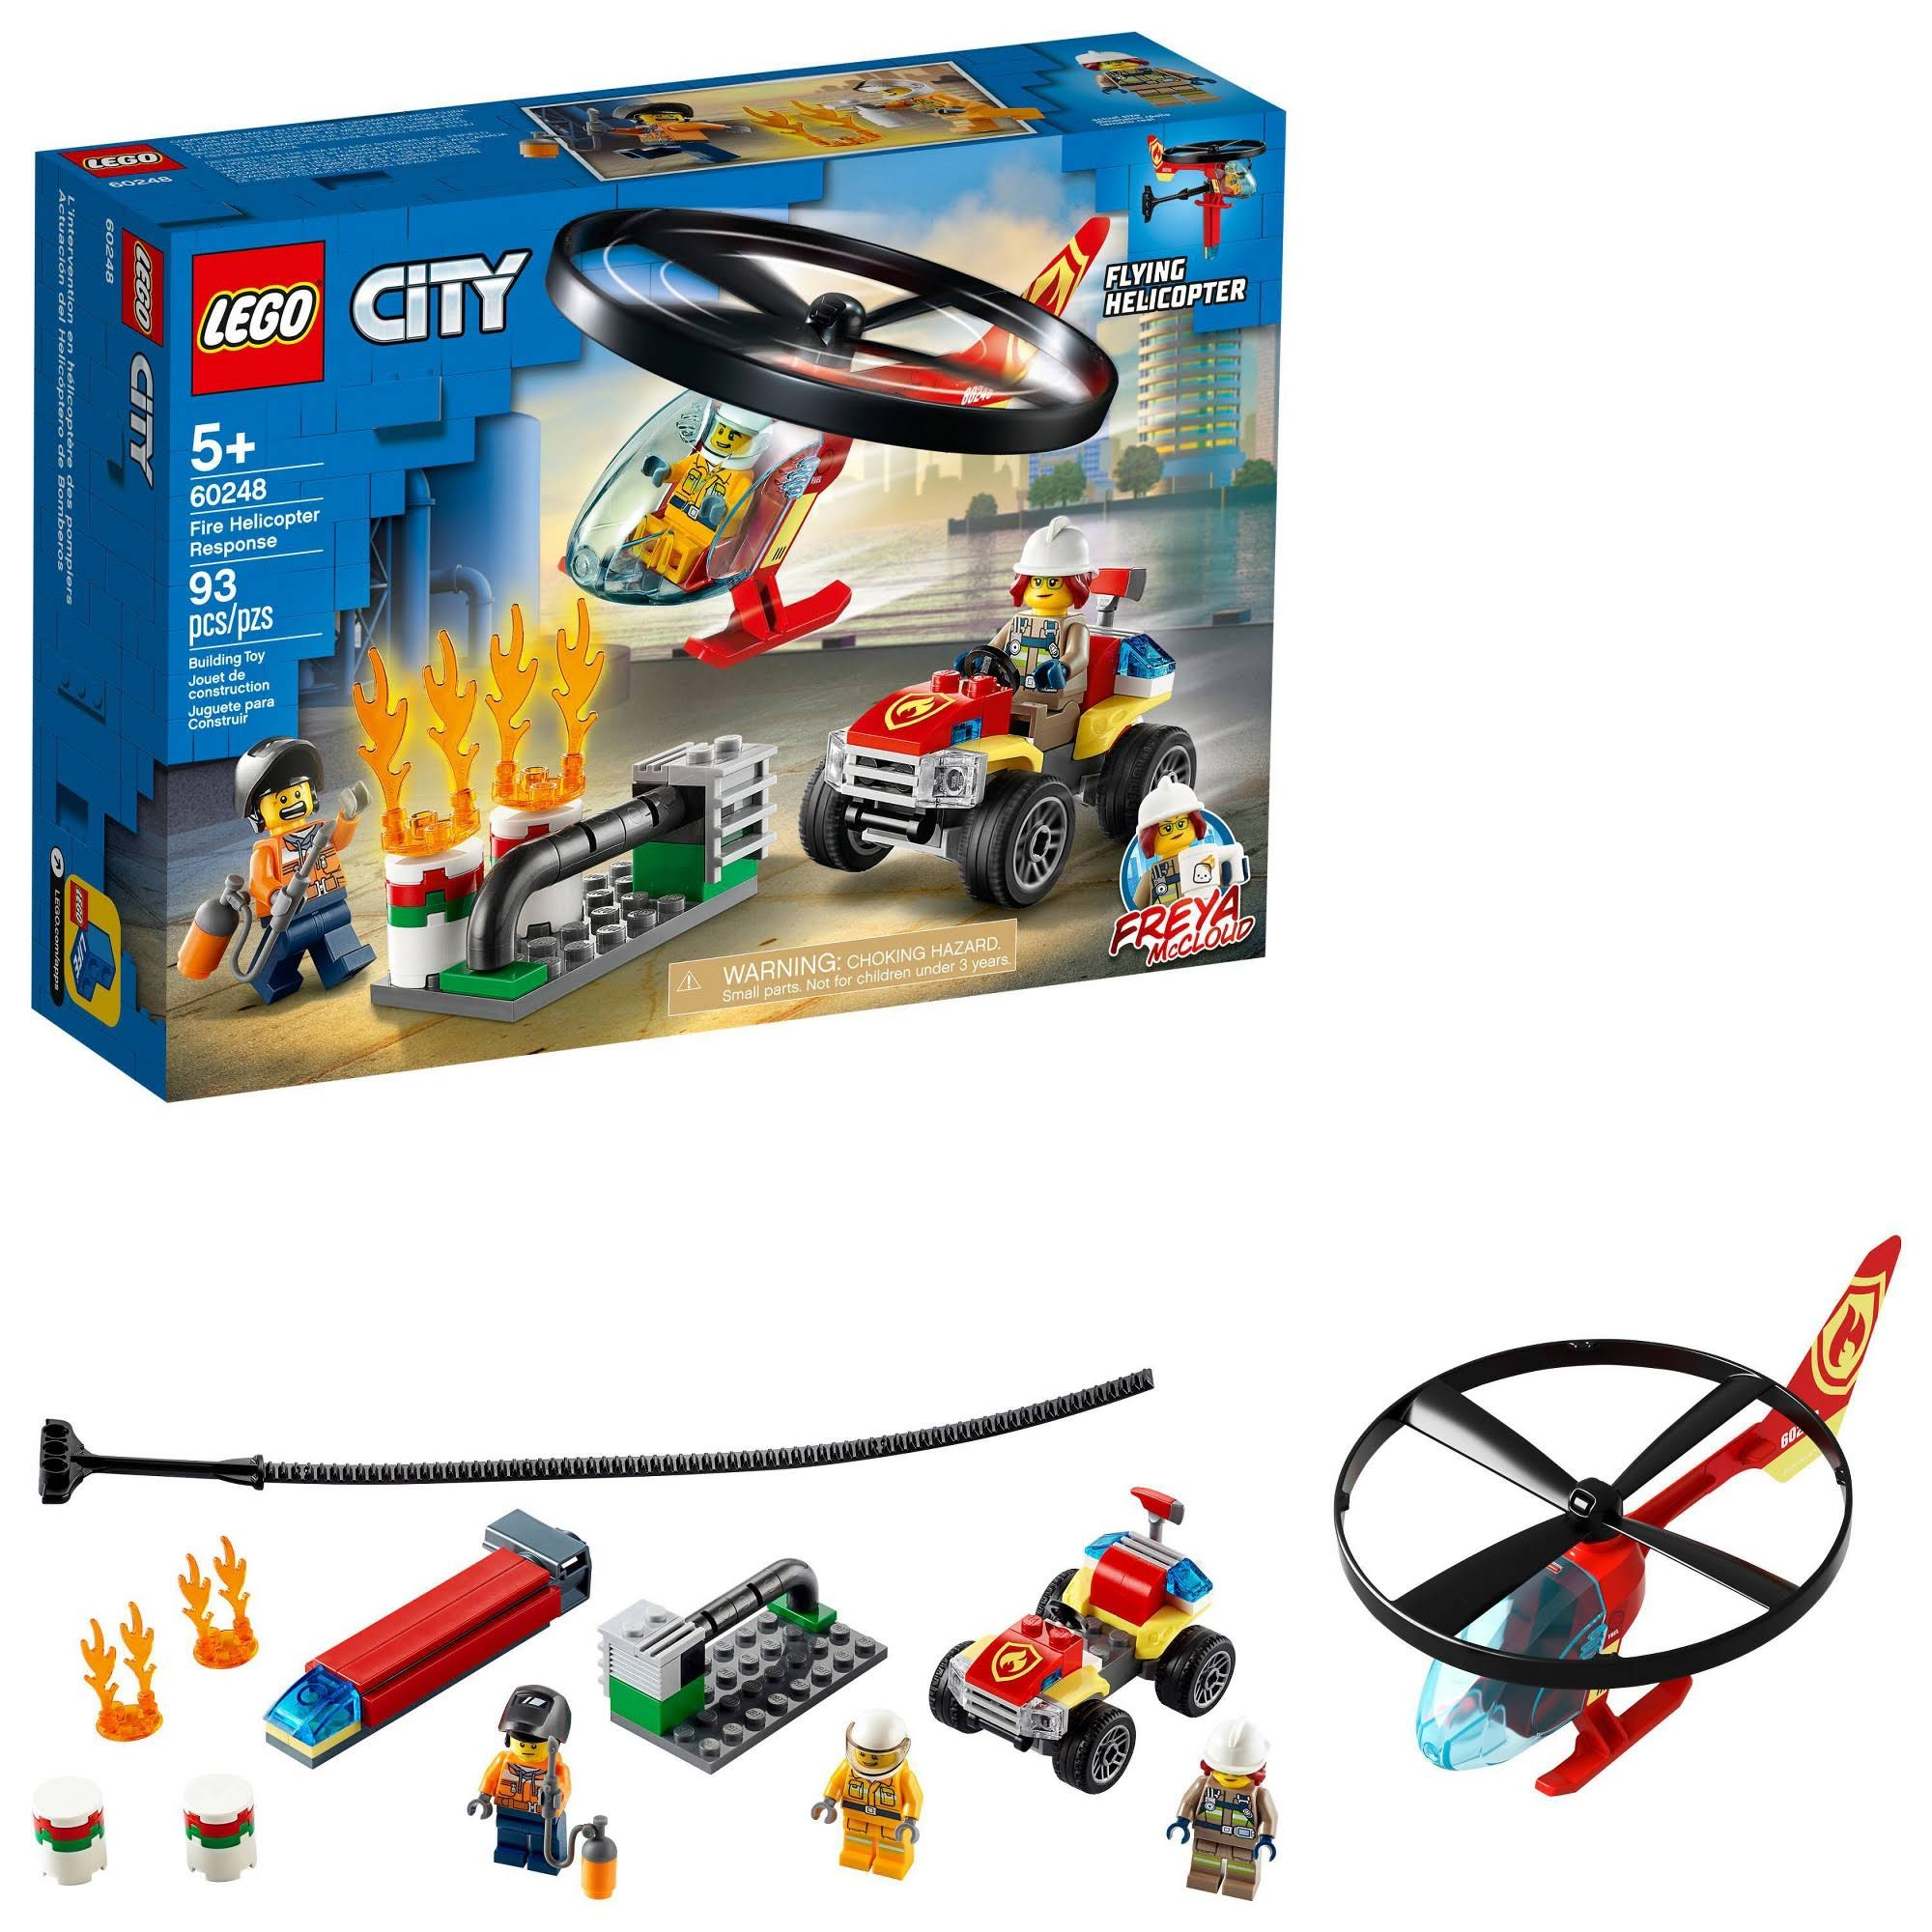 Lego City Fire Helicopter Response 60248 Building Set